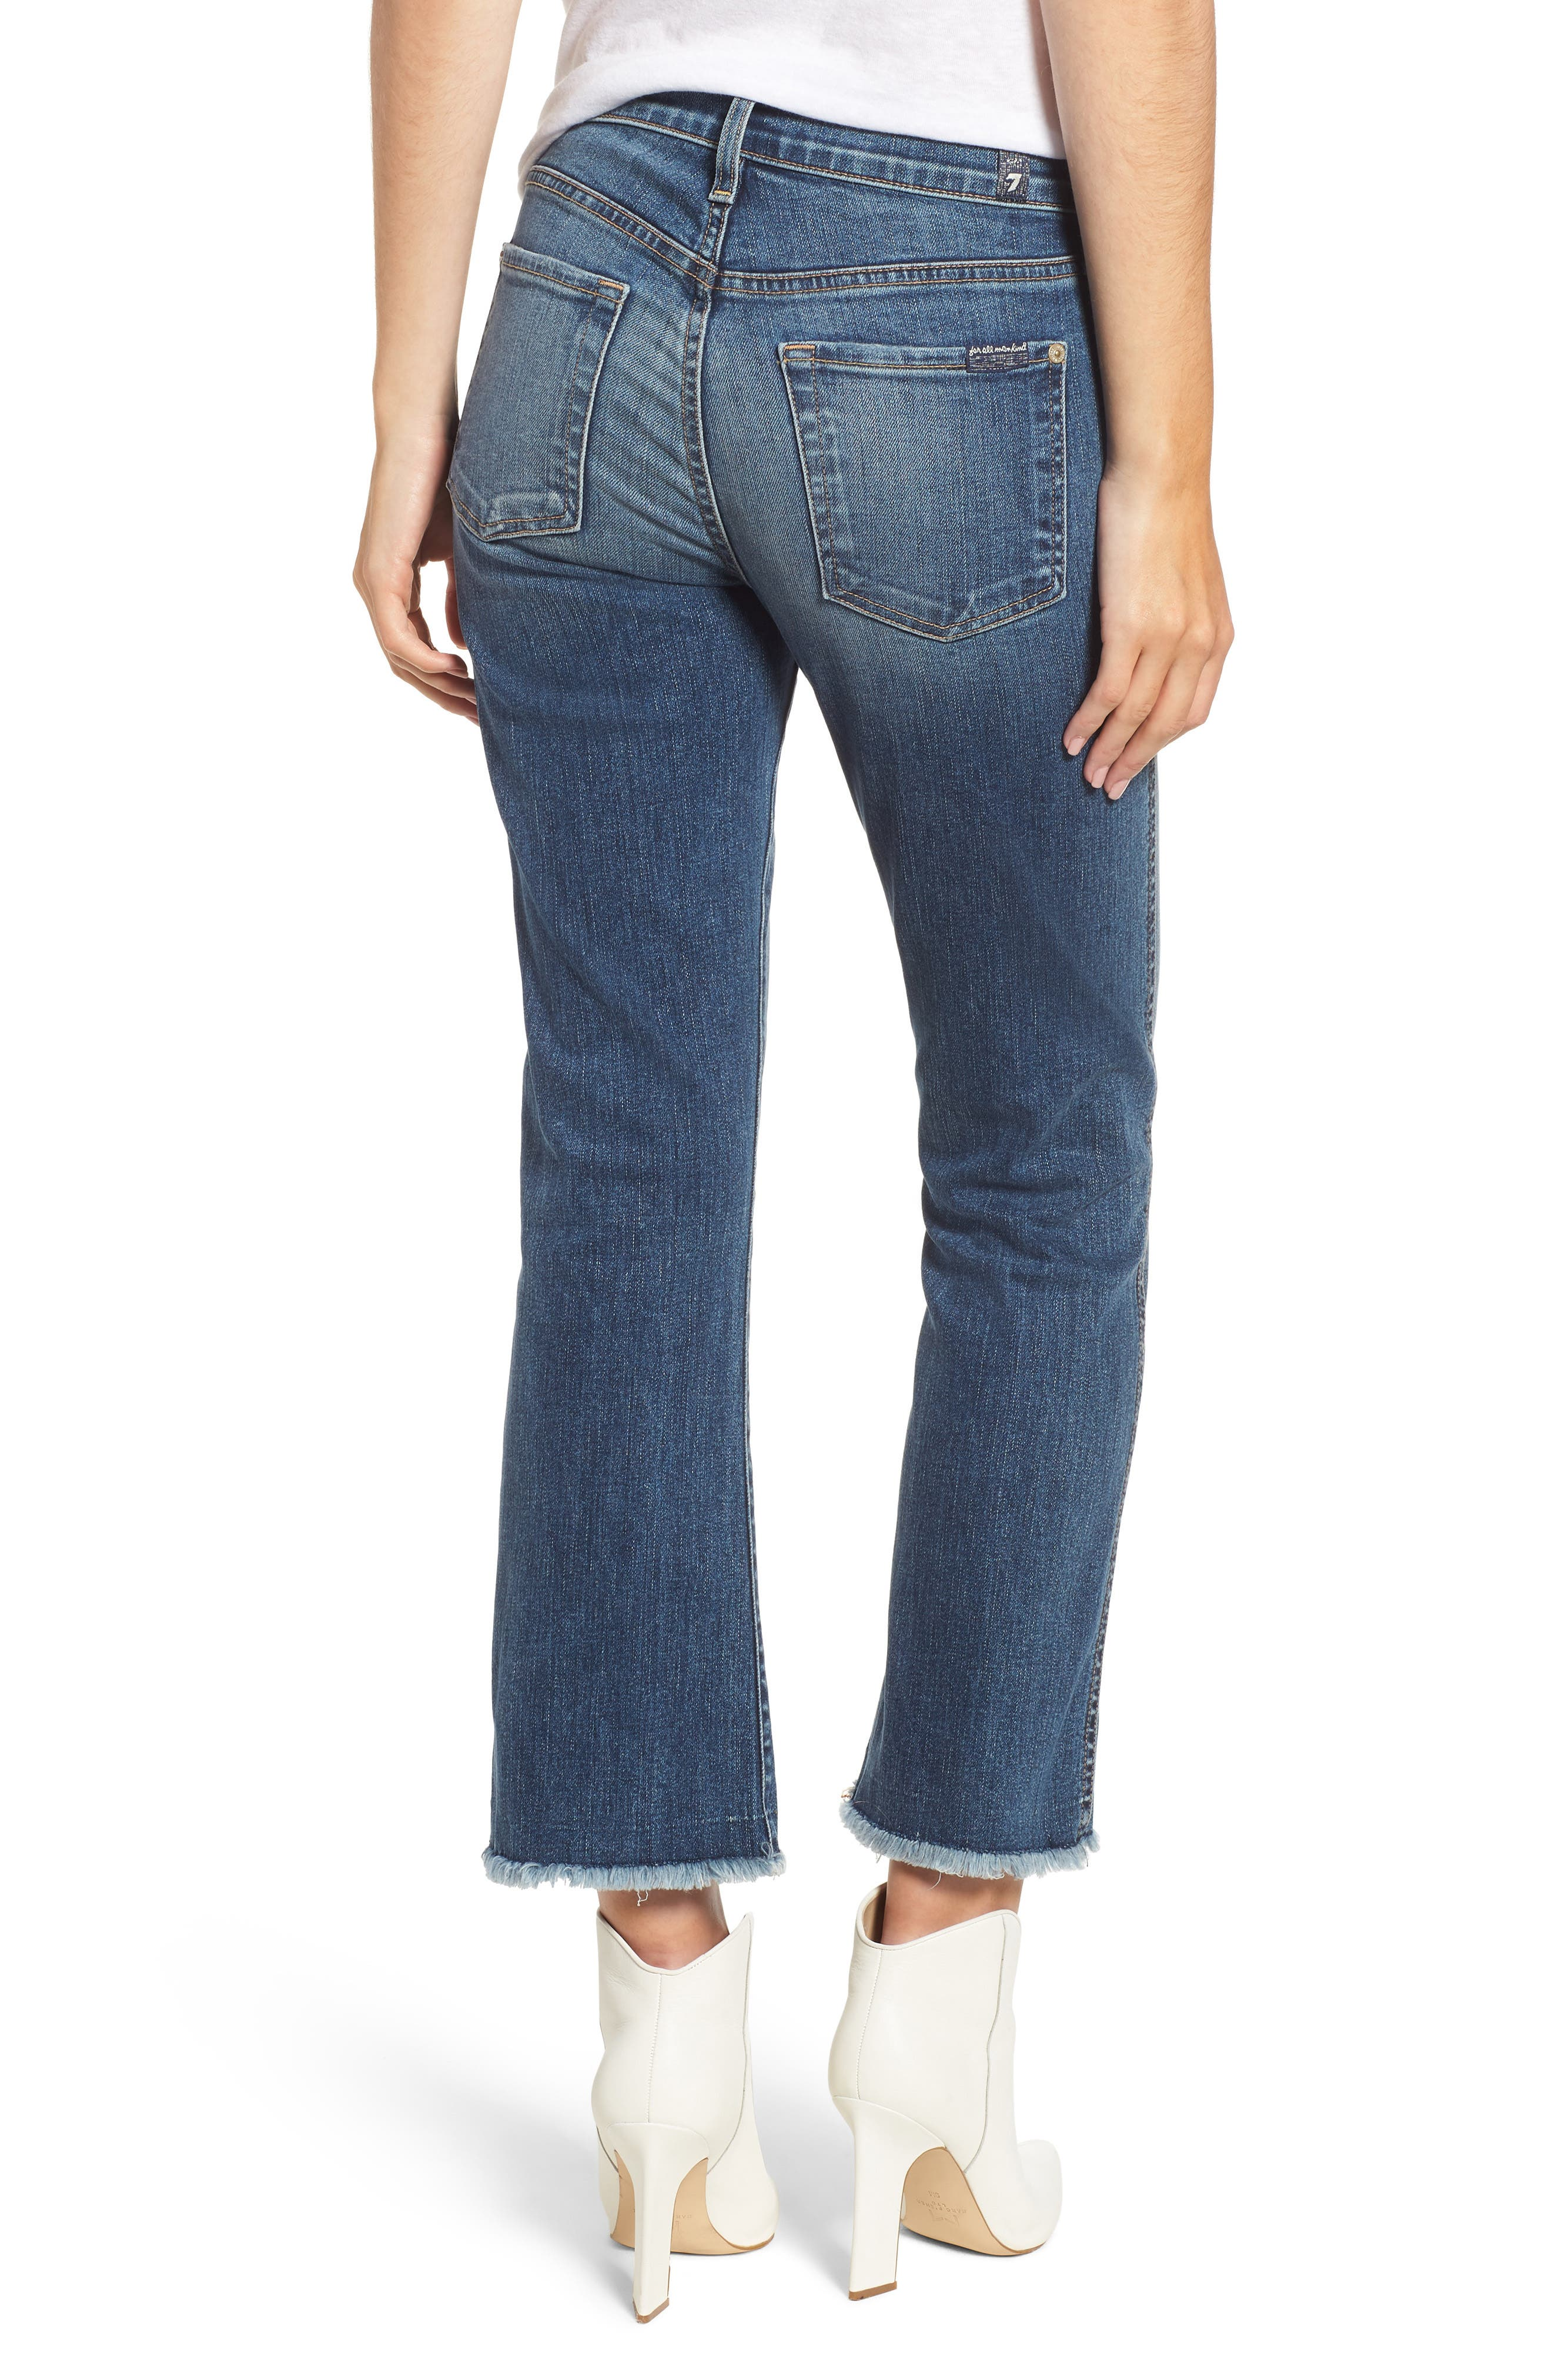 7 FOR ALL MANKIND<SUP>®</SUP>, High Waist Fray Crop Bootcut Jeans, Alternate thumbnail 2, color, 400